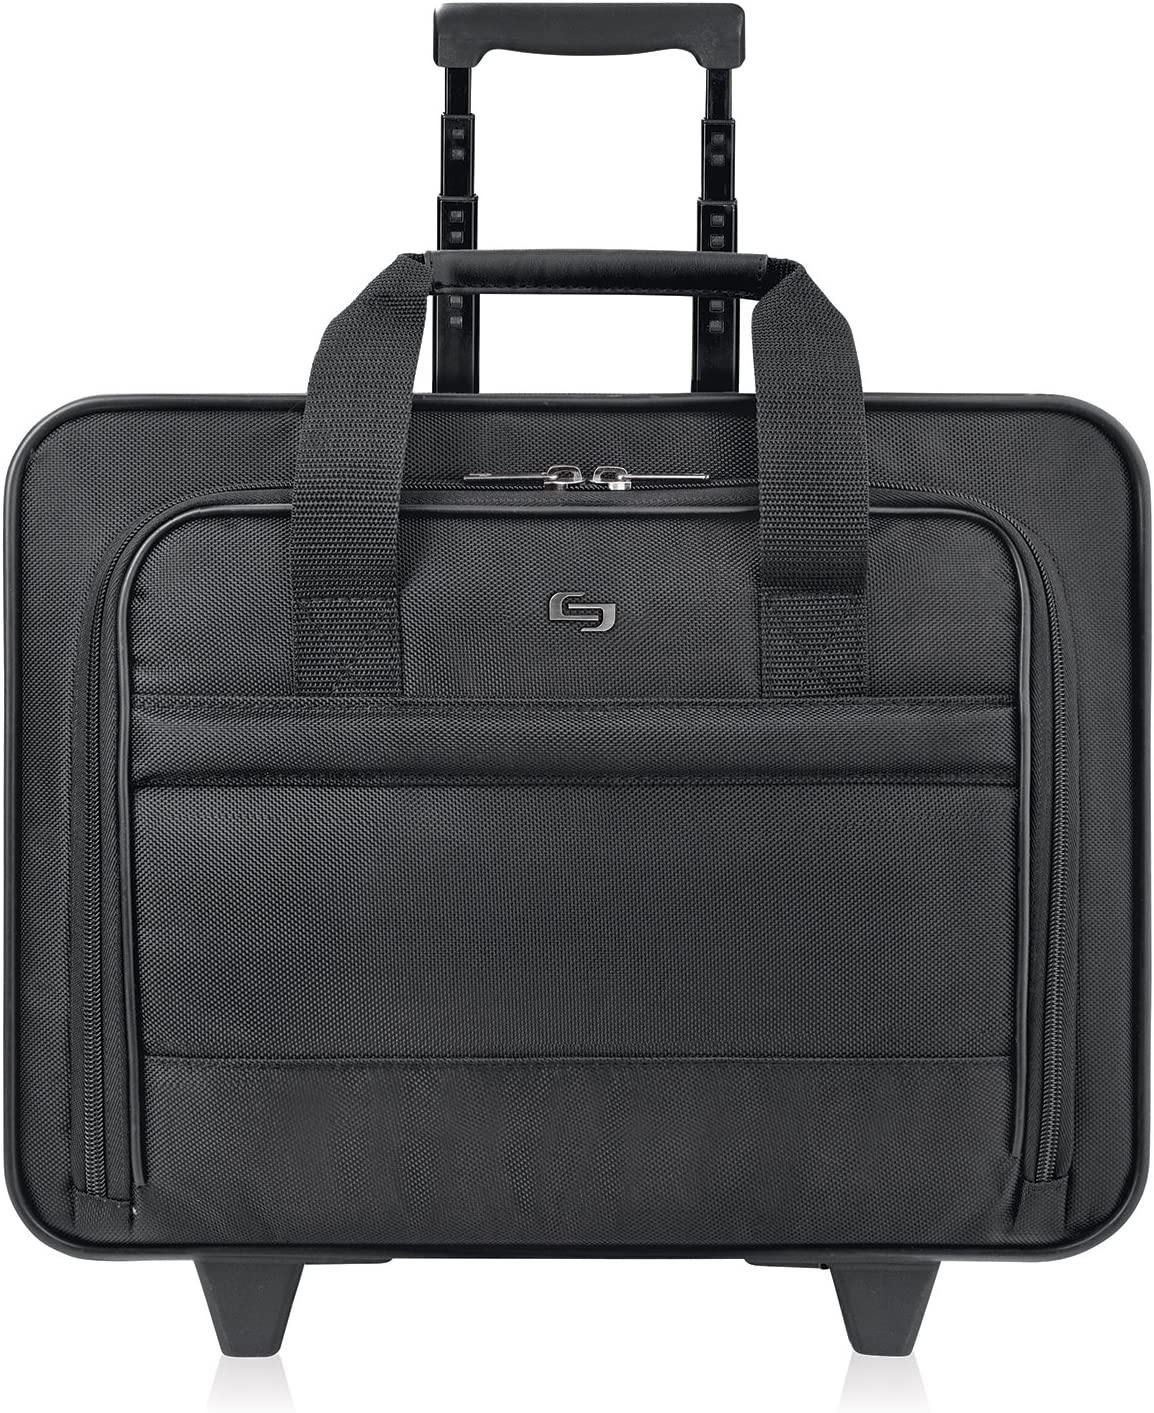 Solo New York Carnegie Rolling Laptop Bag.Slim, Compact Design Rolling Case for Women and Men. Fits up to 15.6 inch laptop - Black